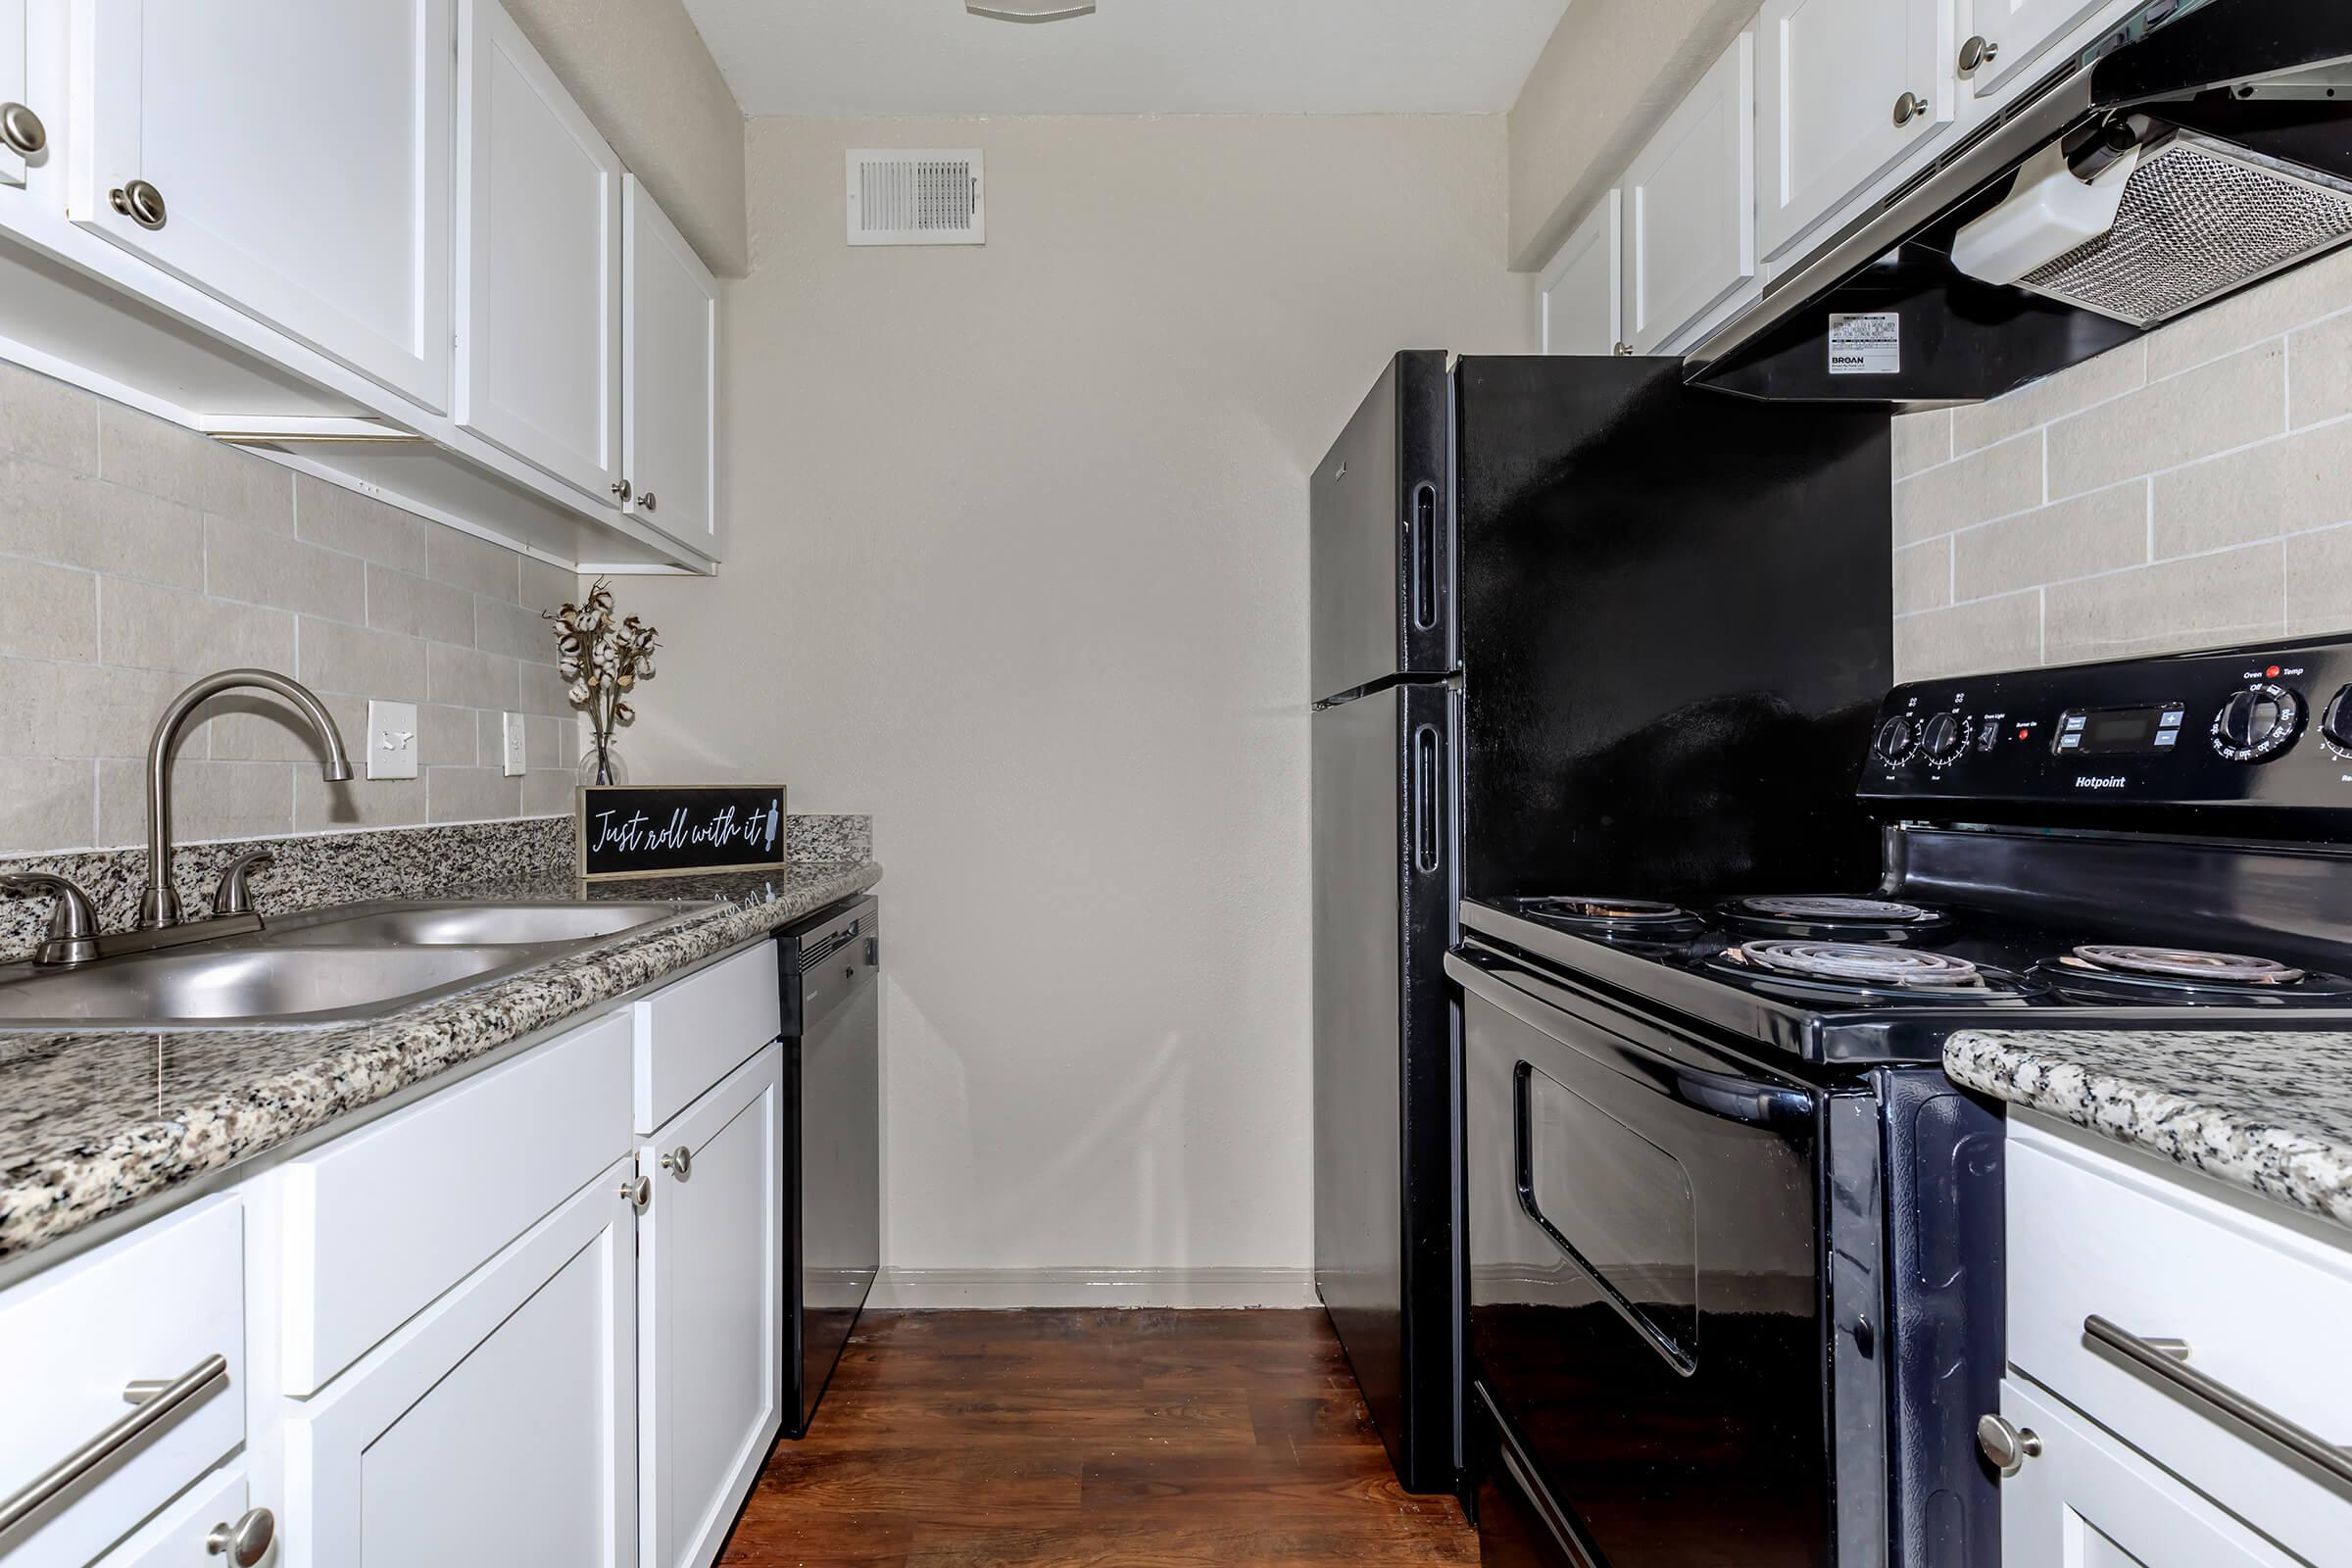 a kitchen with a stove top oven